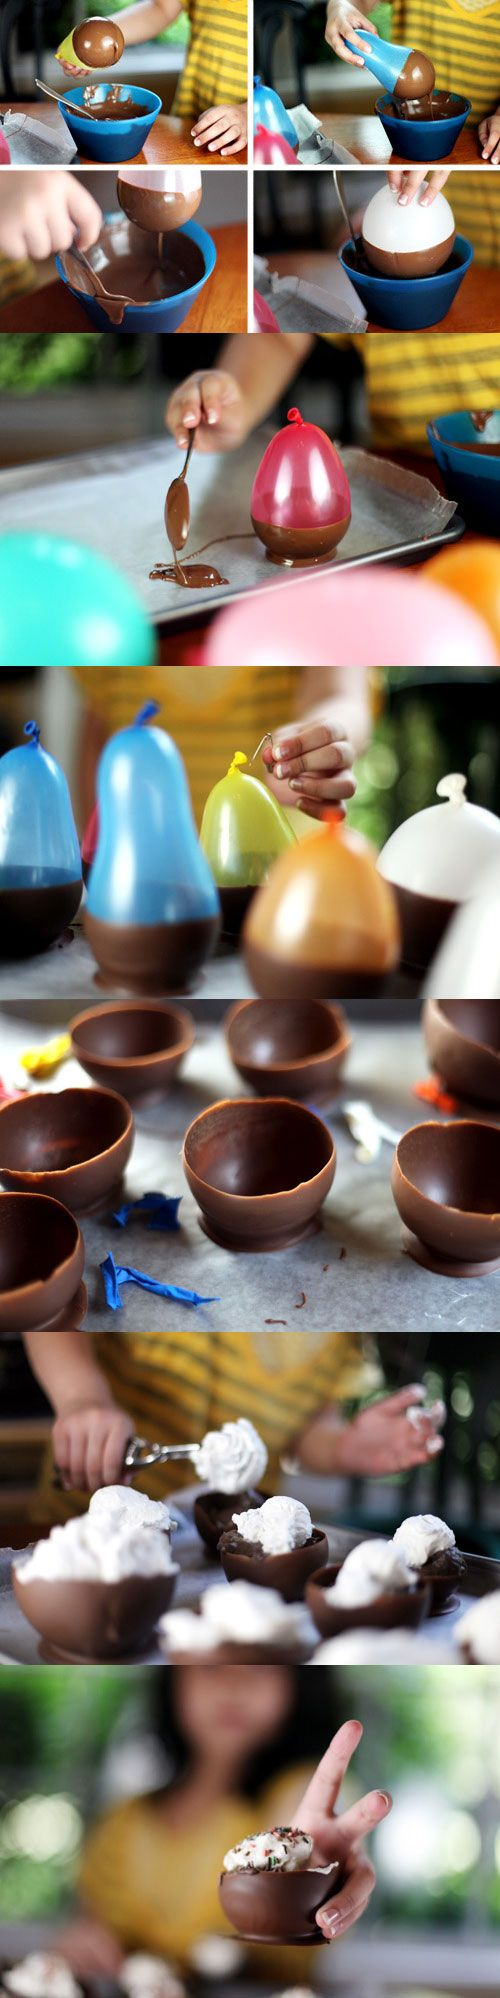 Dip it, burst it, fill it, eat itChocolates Deserts, Fun Desserts Recipe, Chocolates Dips Ideas, Chocolates Bowls With Balloons, Chocolates Cups, Chocolates Desserts, Chocolates Bowls Balloons, Cool Ideas, How To Melted Chocolate